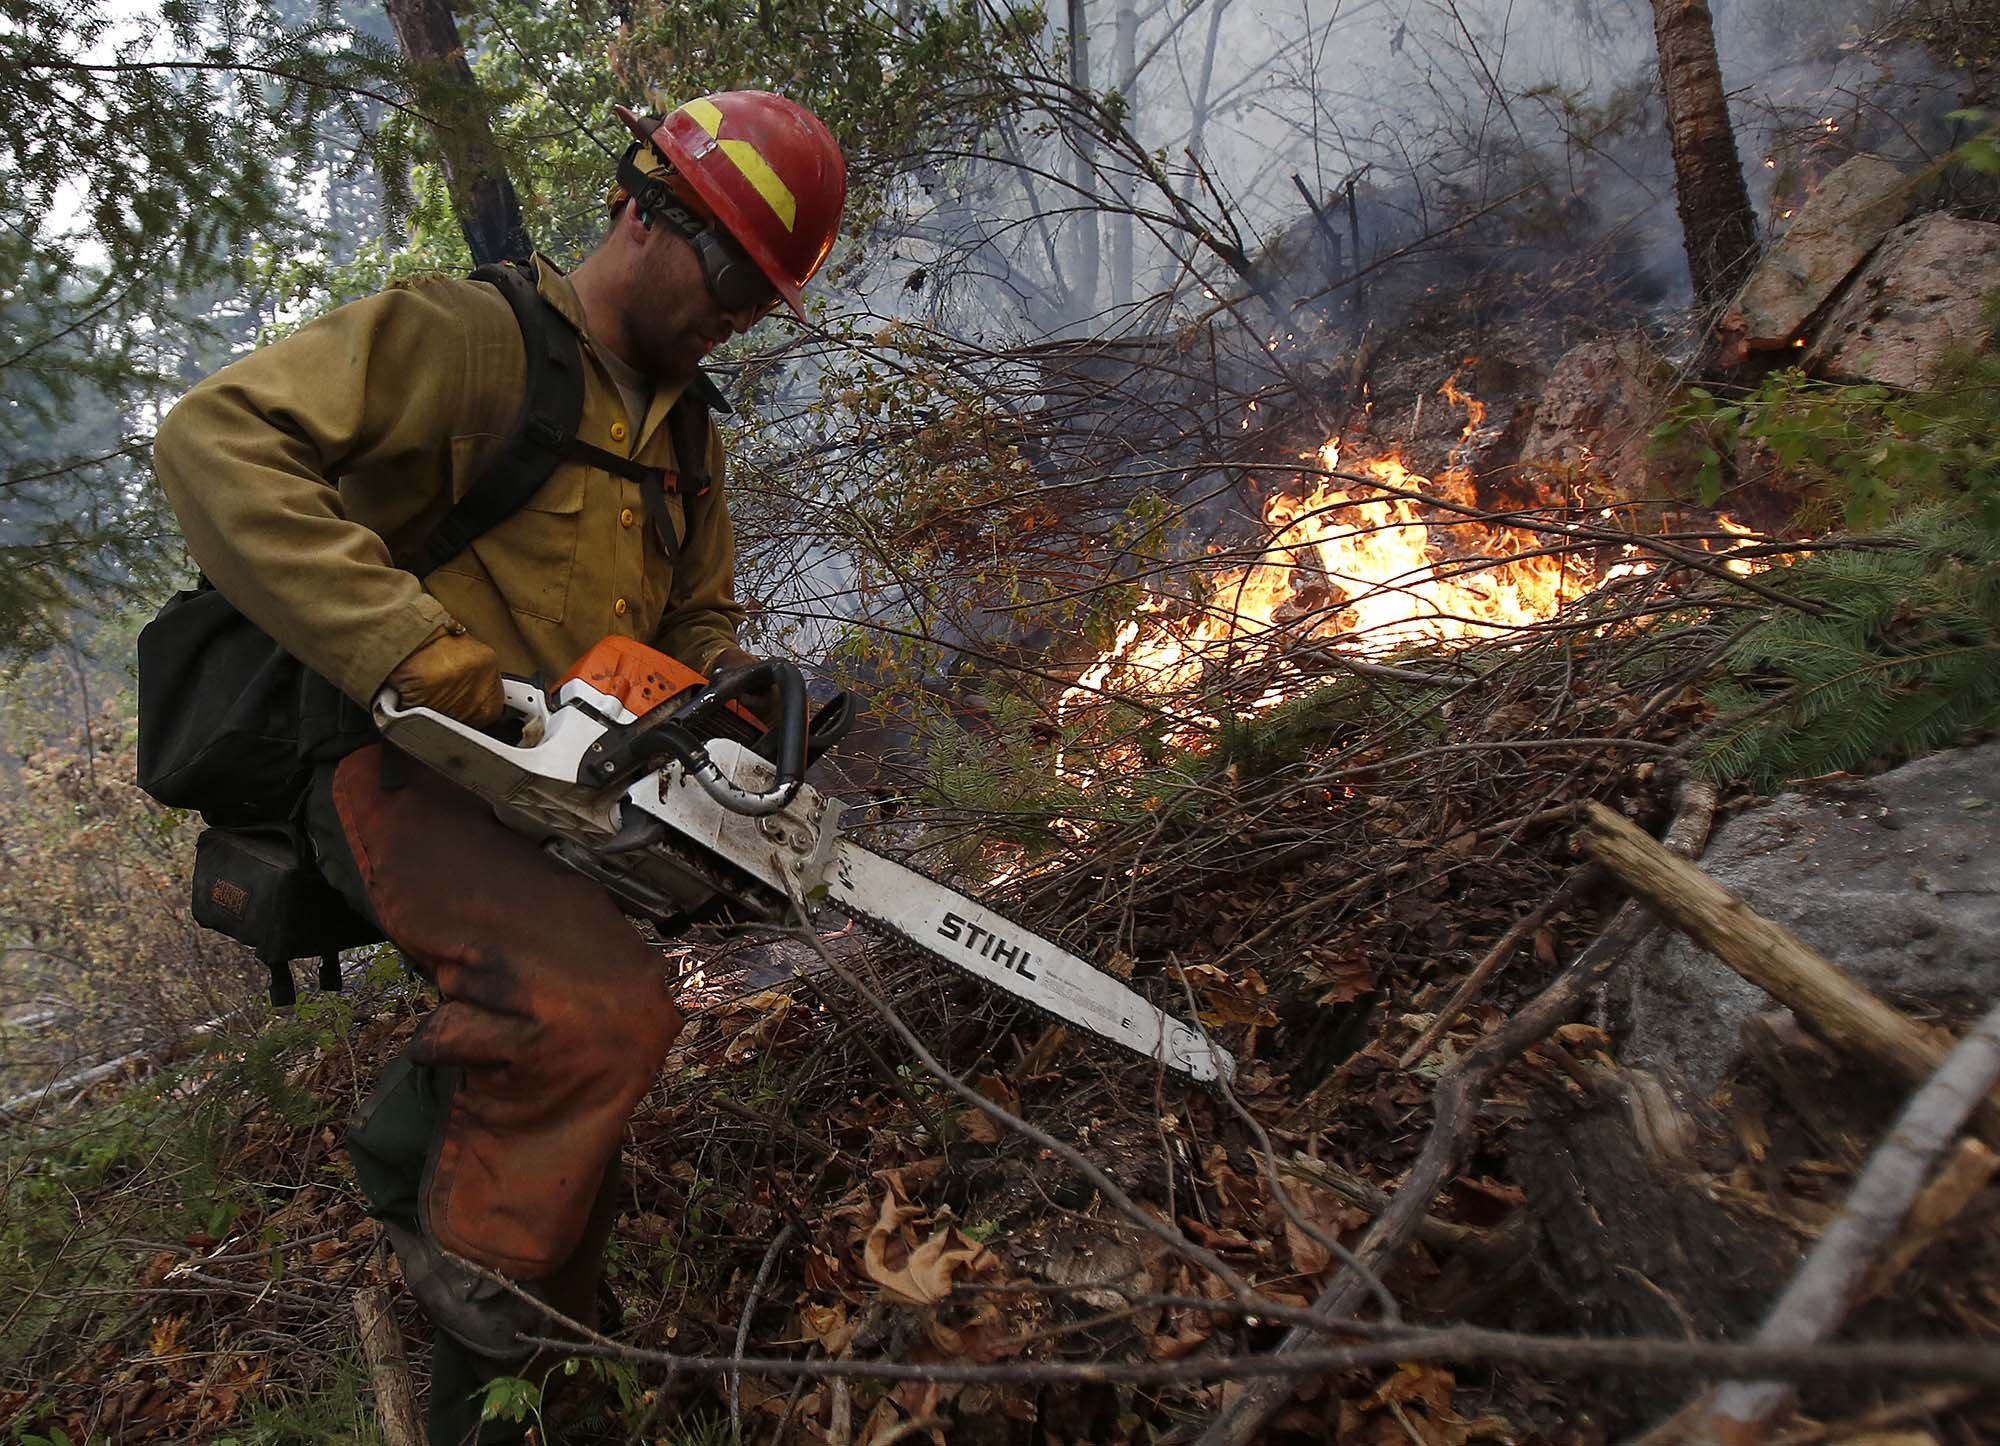 Adam Jordan from Oregon heads back uphill after clearing brush at the First Creek Fire in the Lake Chelan State Park on Sunday, Aug. 16, 2015.